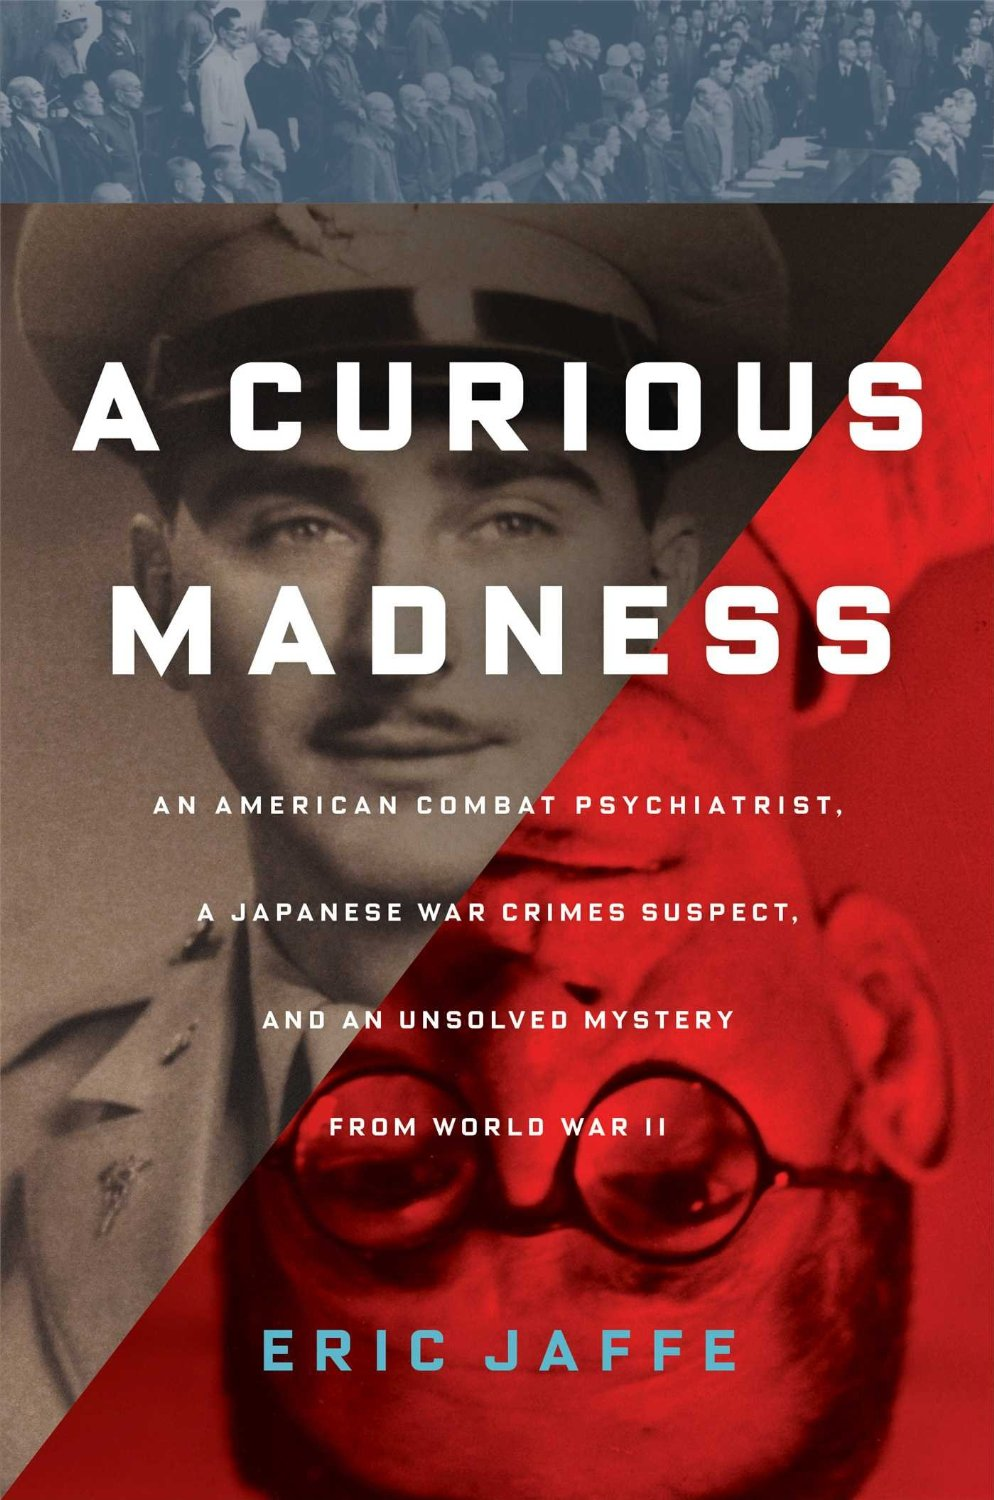 A Curious Madness: An American Combat Psychiatrist, a Japanese War Crimes Suspect, and an Unsolved Mystery from World War II free download